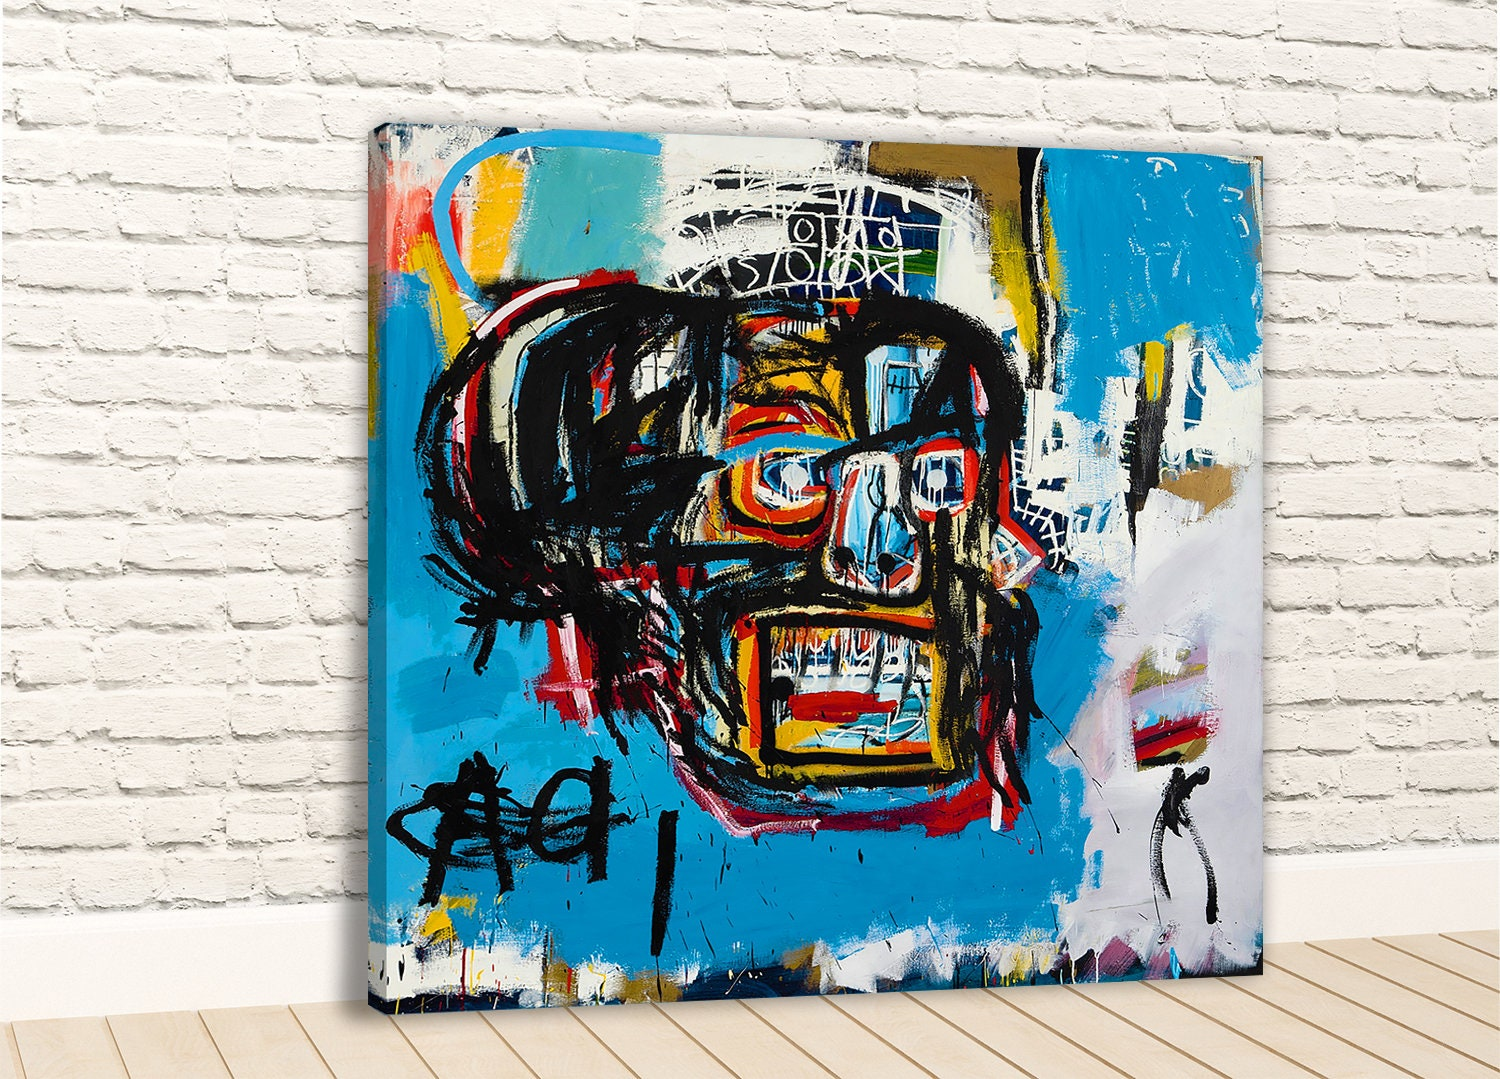 Jean-Michel Basquiat Fallen Angel New HD print on Canvas ready to hang large size wall Picture or Hand painted oil Painting 28x24 inches